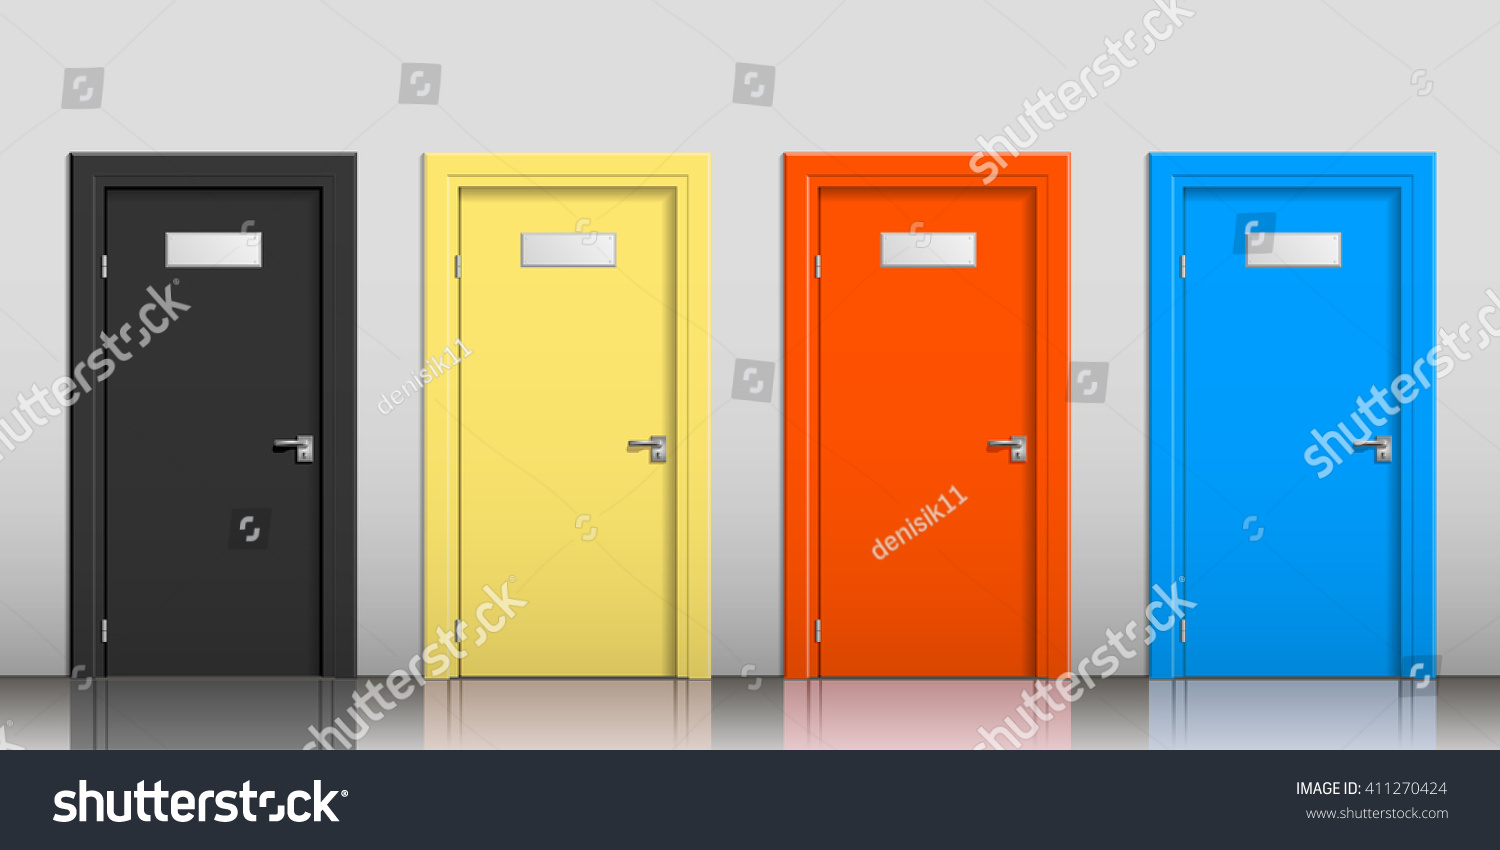 Doors Different Colors Signs On Gray Stock Vector 411270424 ...